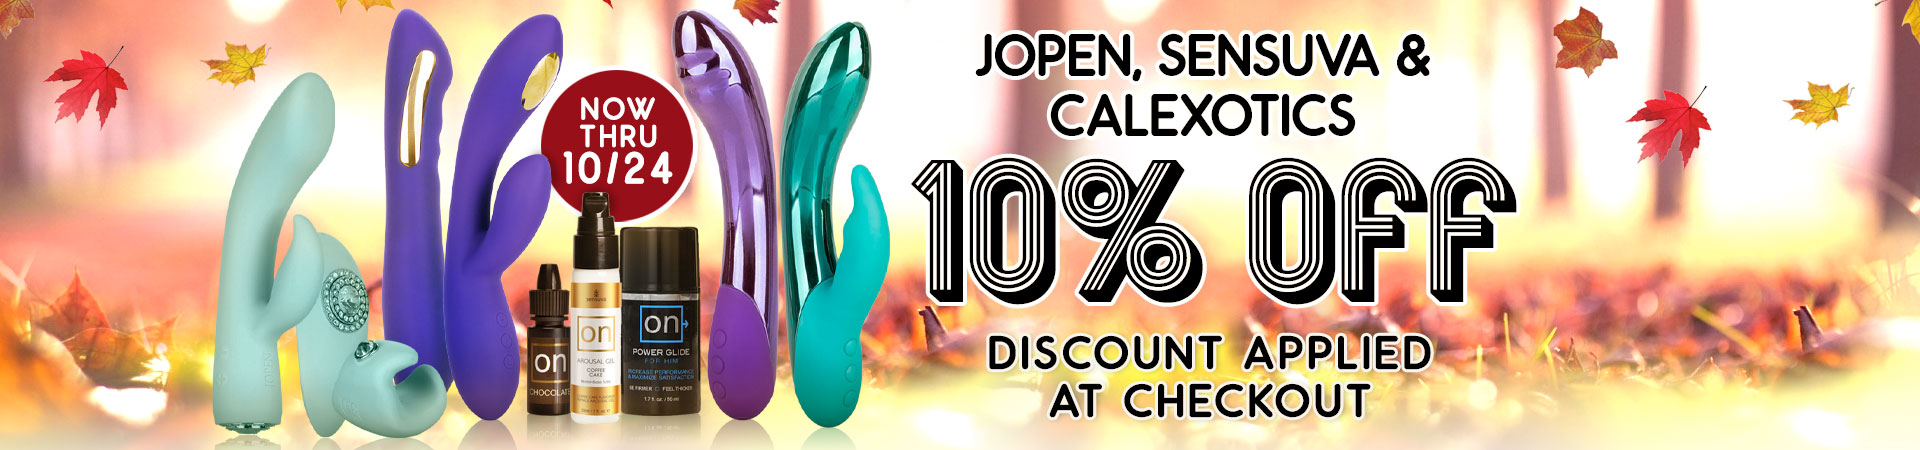 Save 10% On All Jopen, Calexotics & Sensuva Products! - Discount Applied At Checkout - Hurry! Ends October 24Th!